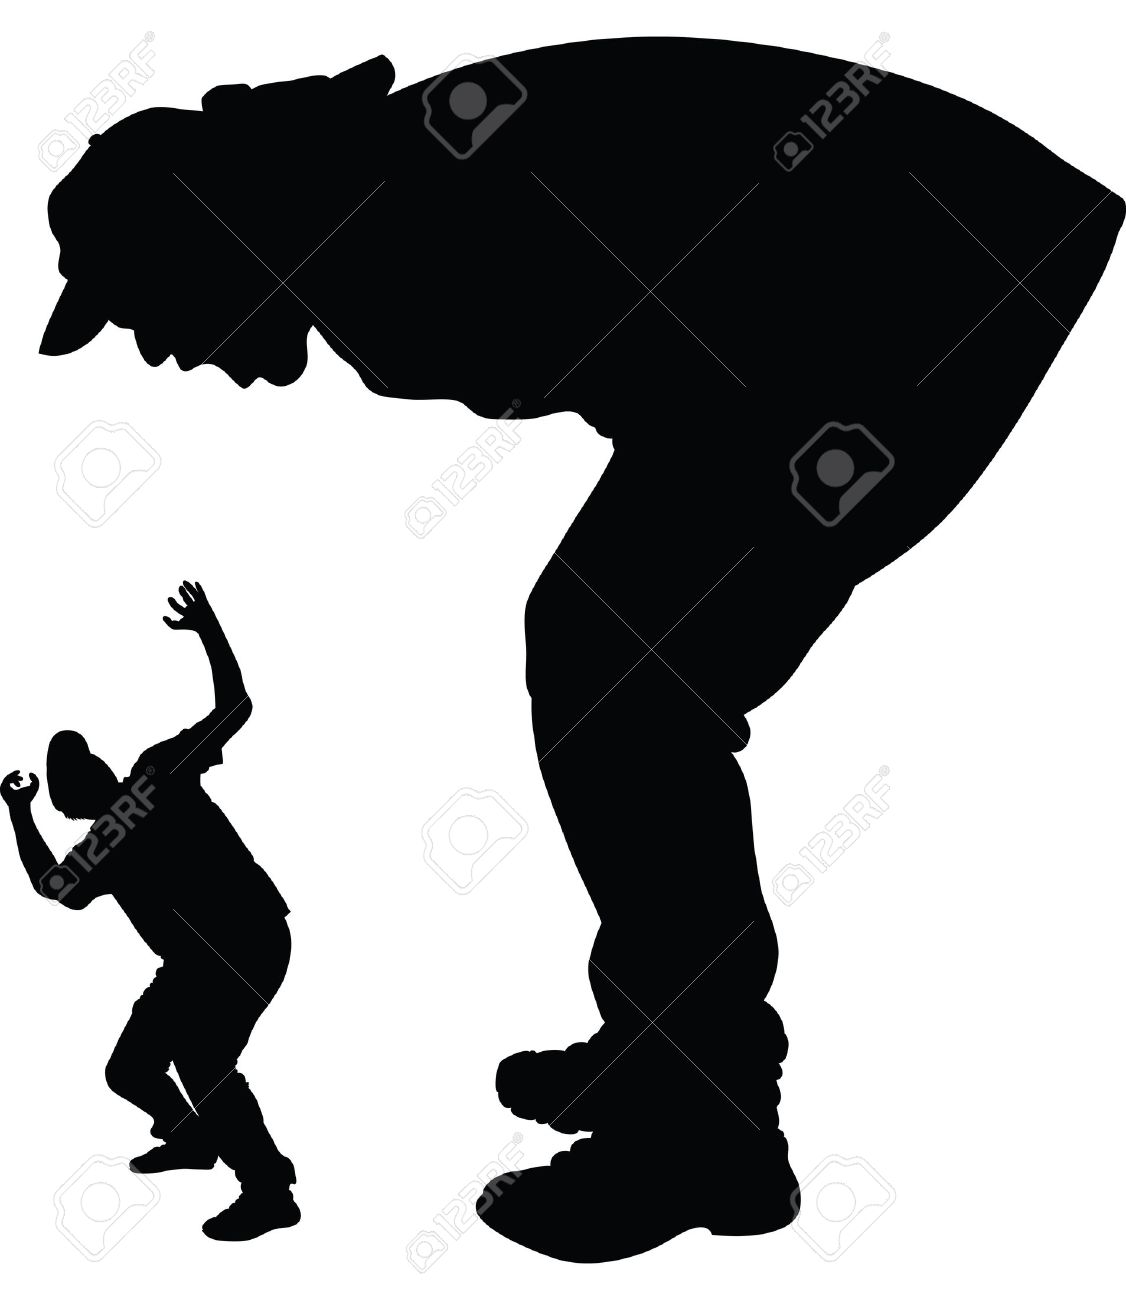 a silhouette of a giant man shouting and scaring a smaller man